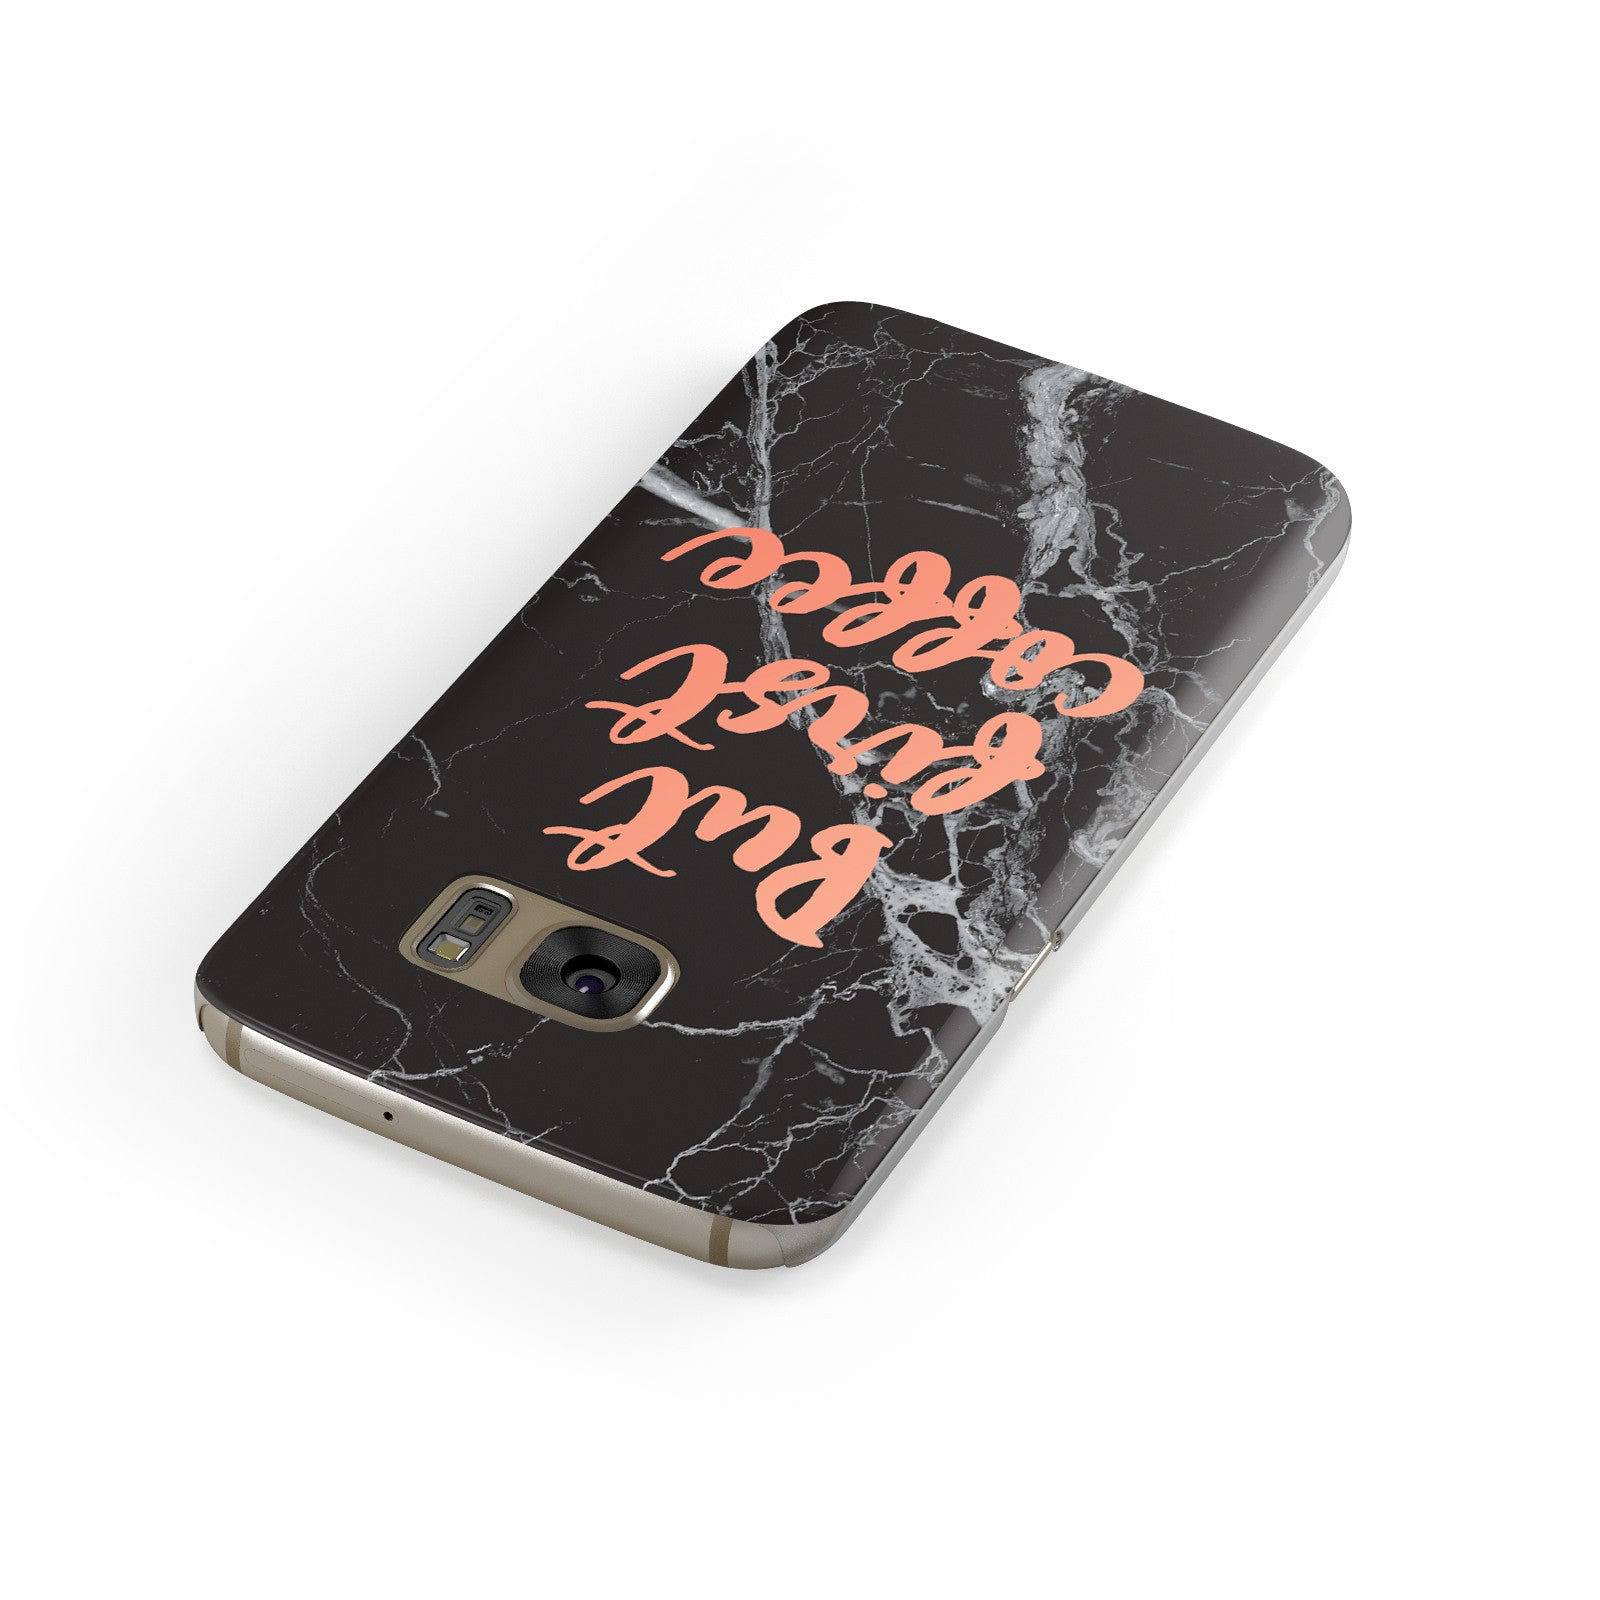 But First Coffee Black Marble Effect Samsung Galaxy Case Front Close Up